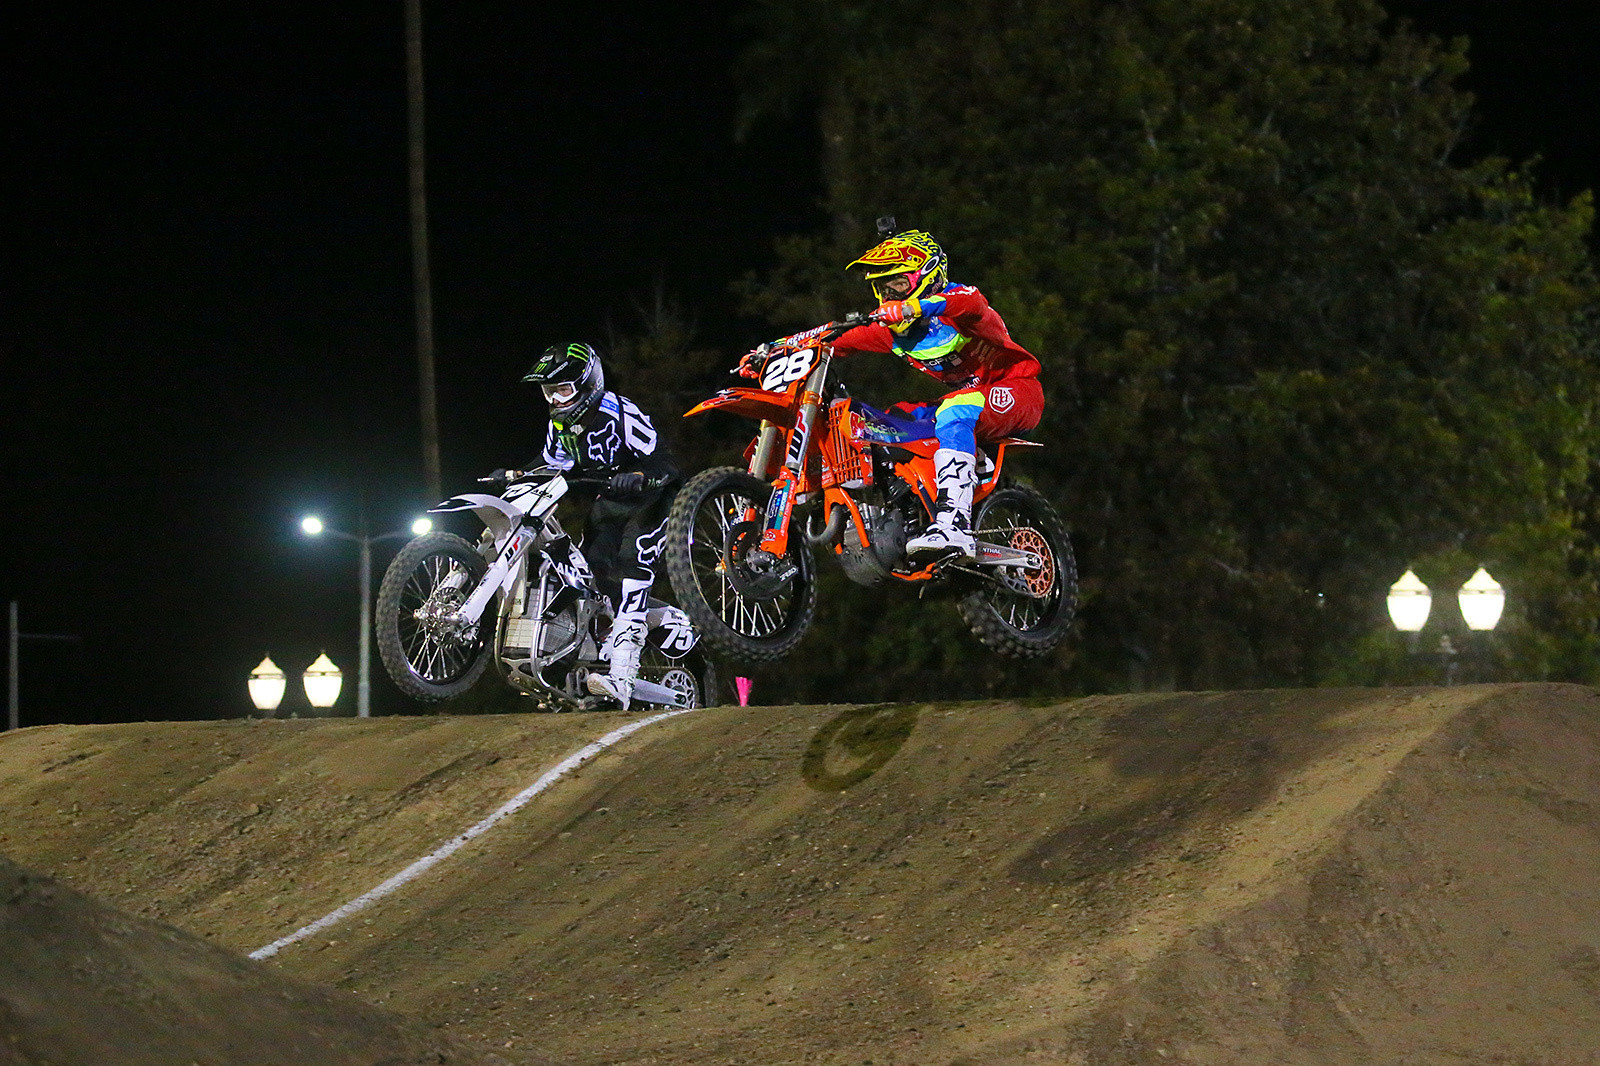 Josh Hill and Mitchell Oldenburg - Photo Blast: Red Bull Straight Rhythm - Motocross Pictures - Vital MX